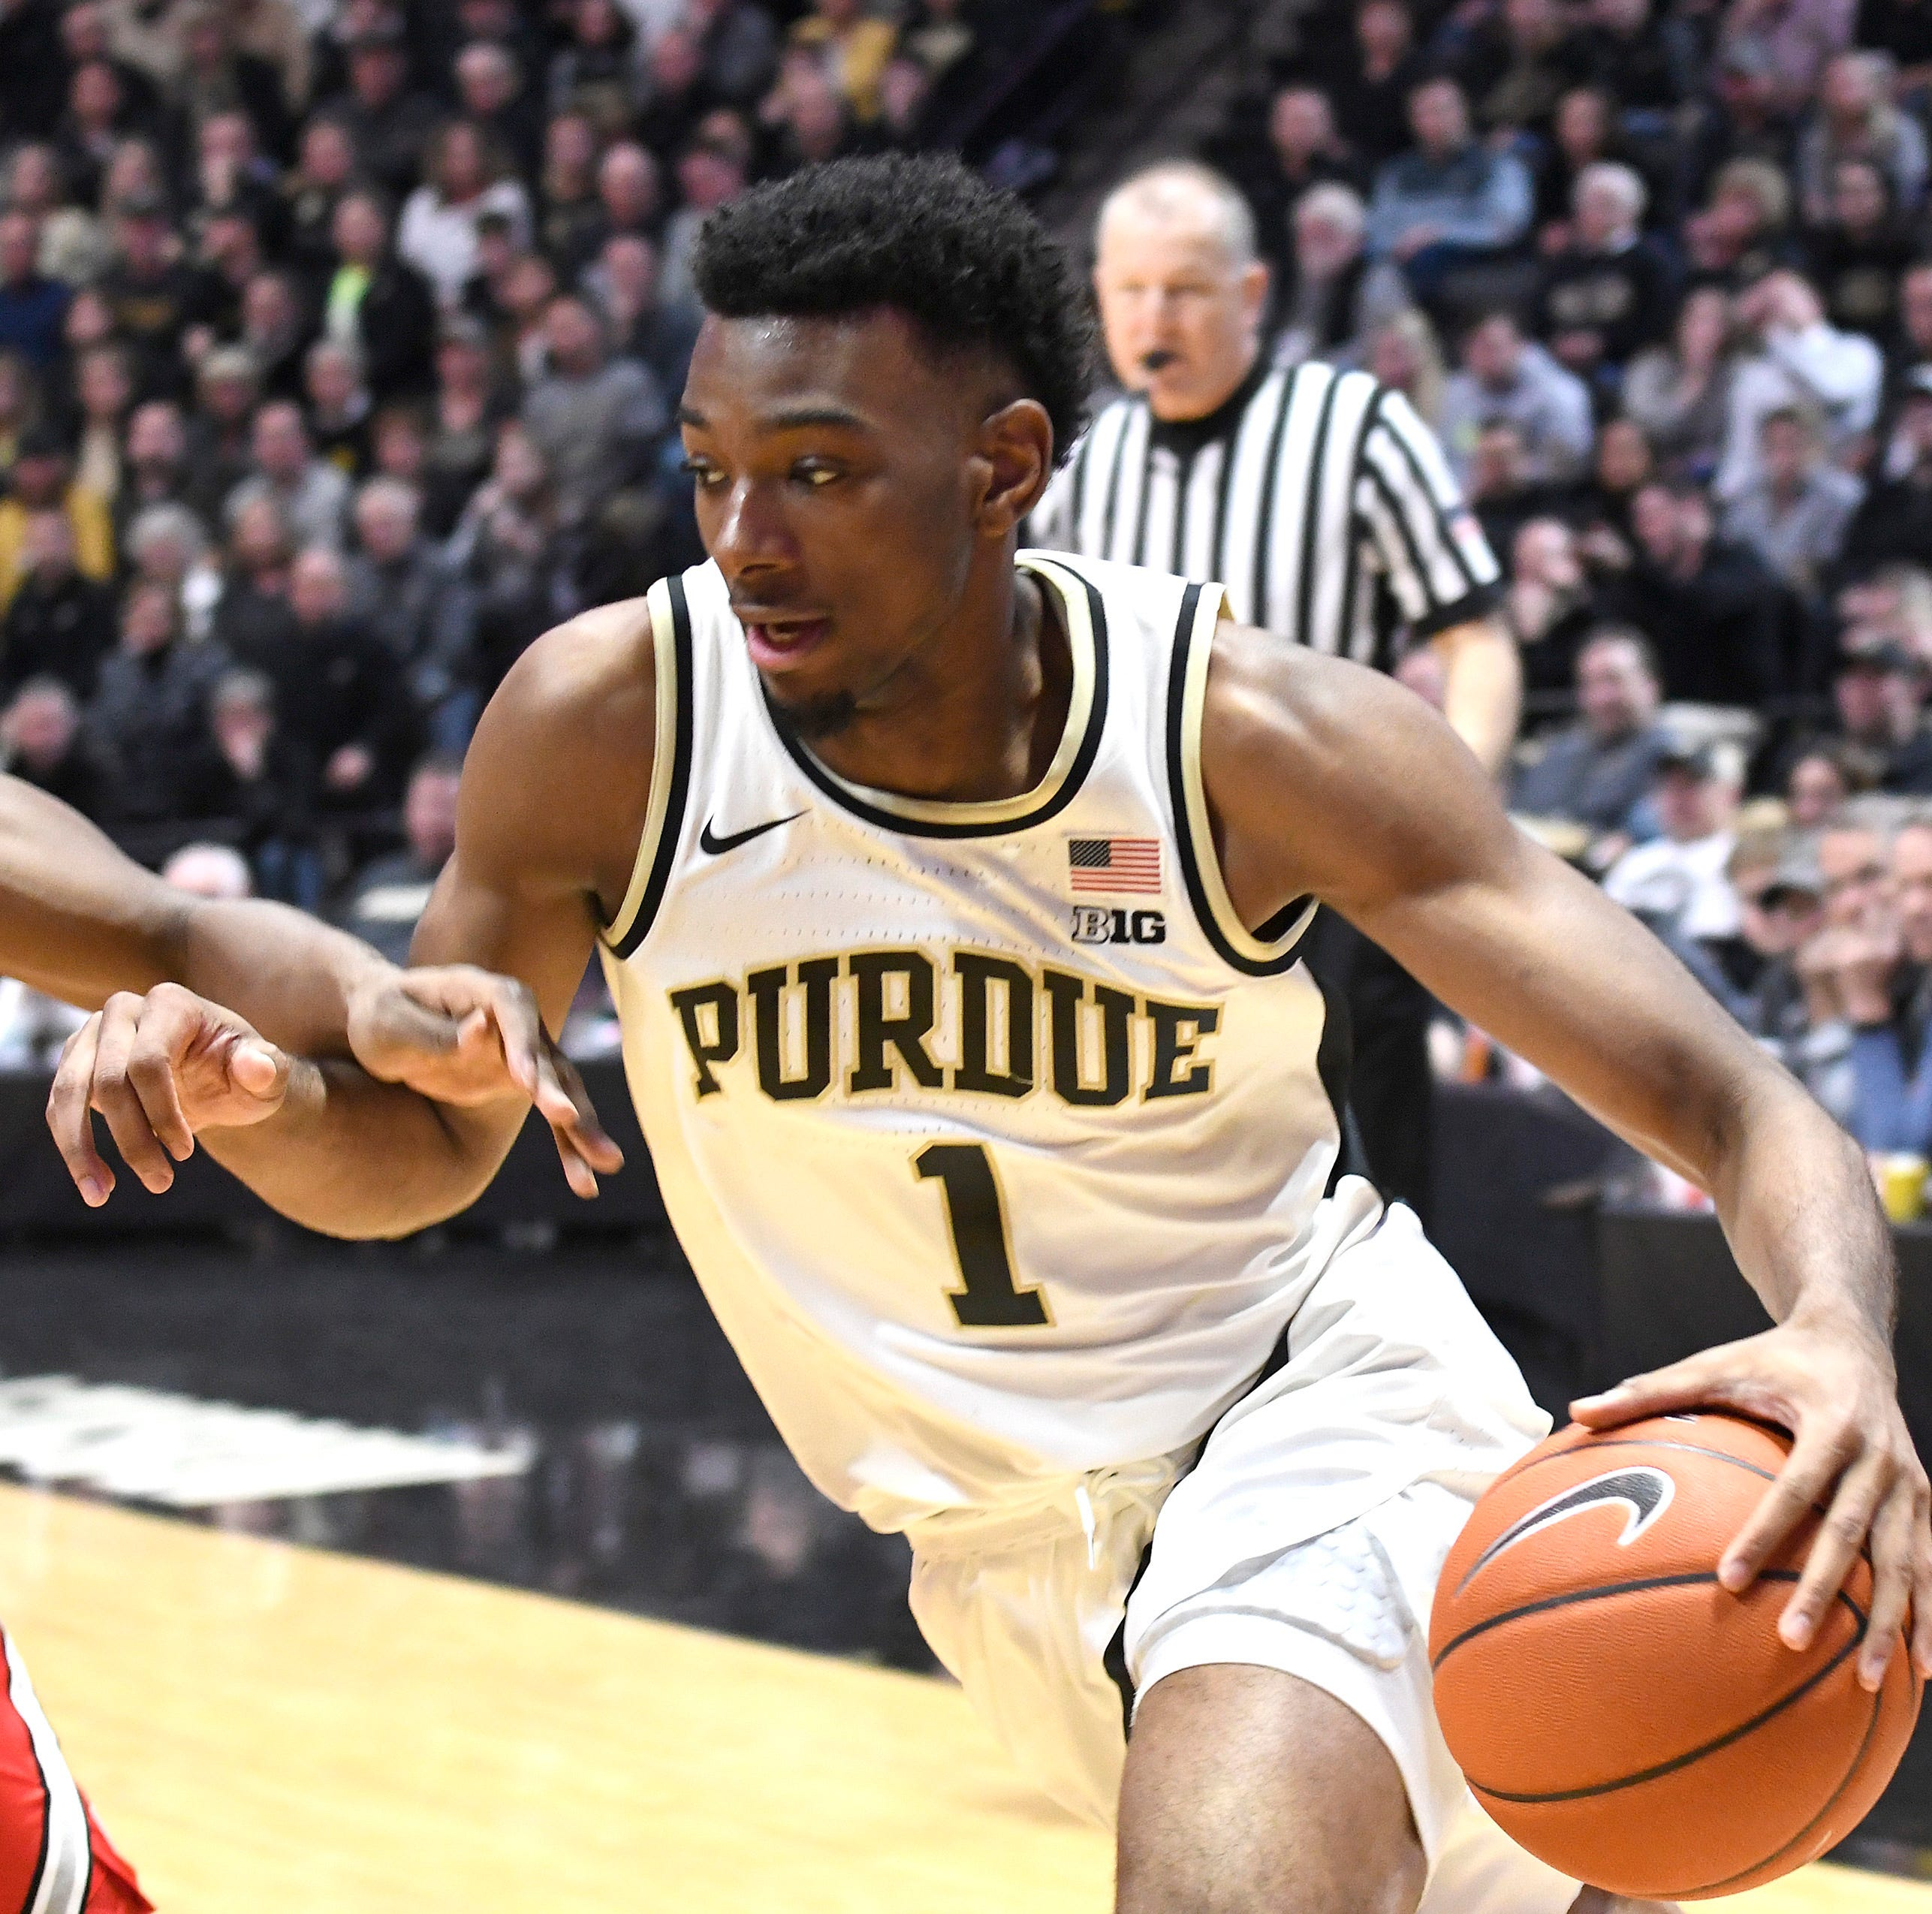 NCAA tournament brings Purdue's Aaron Wheeler back to Connecticut, and a basketball legacy